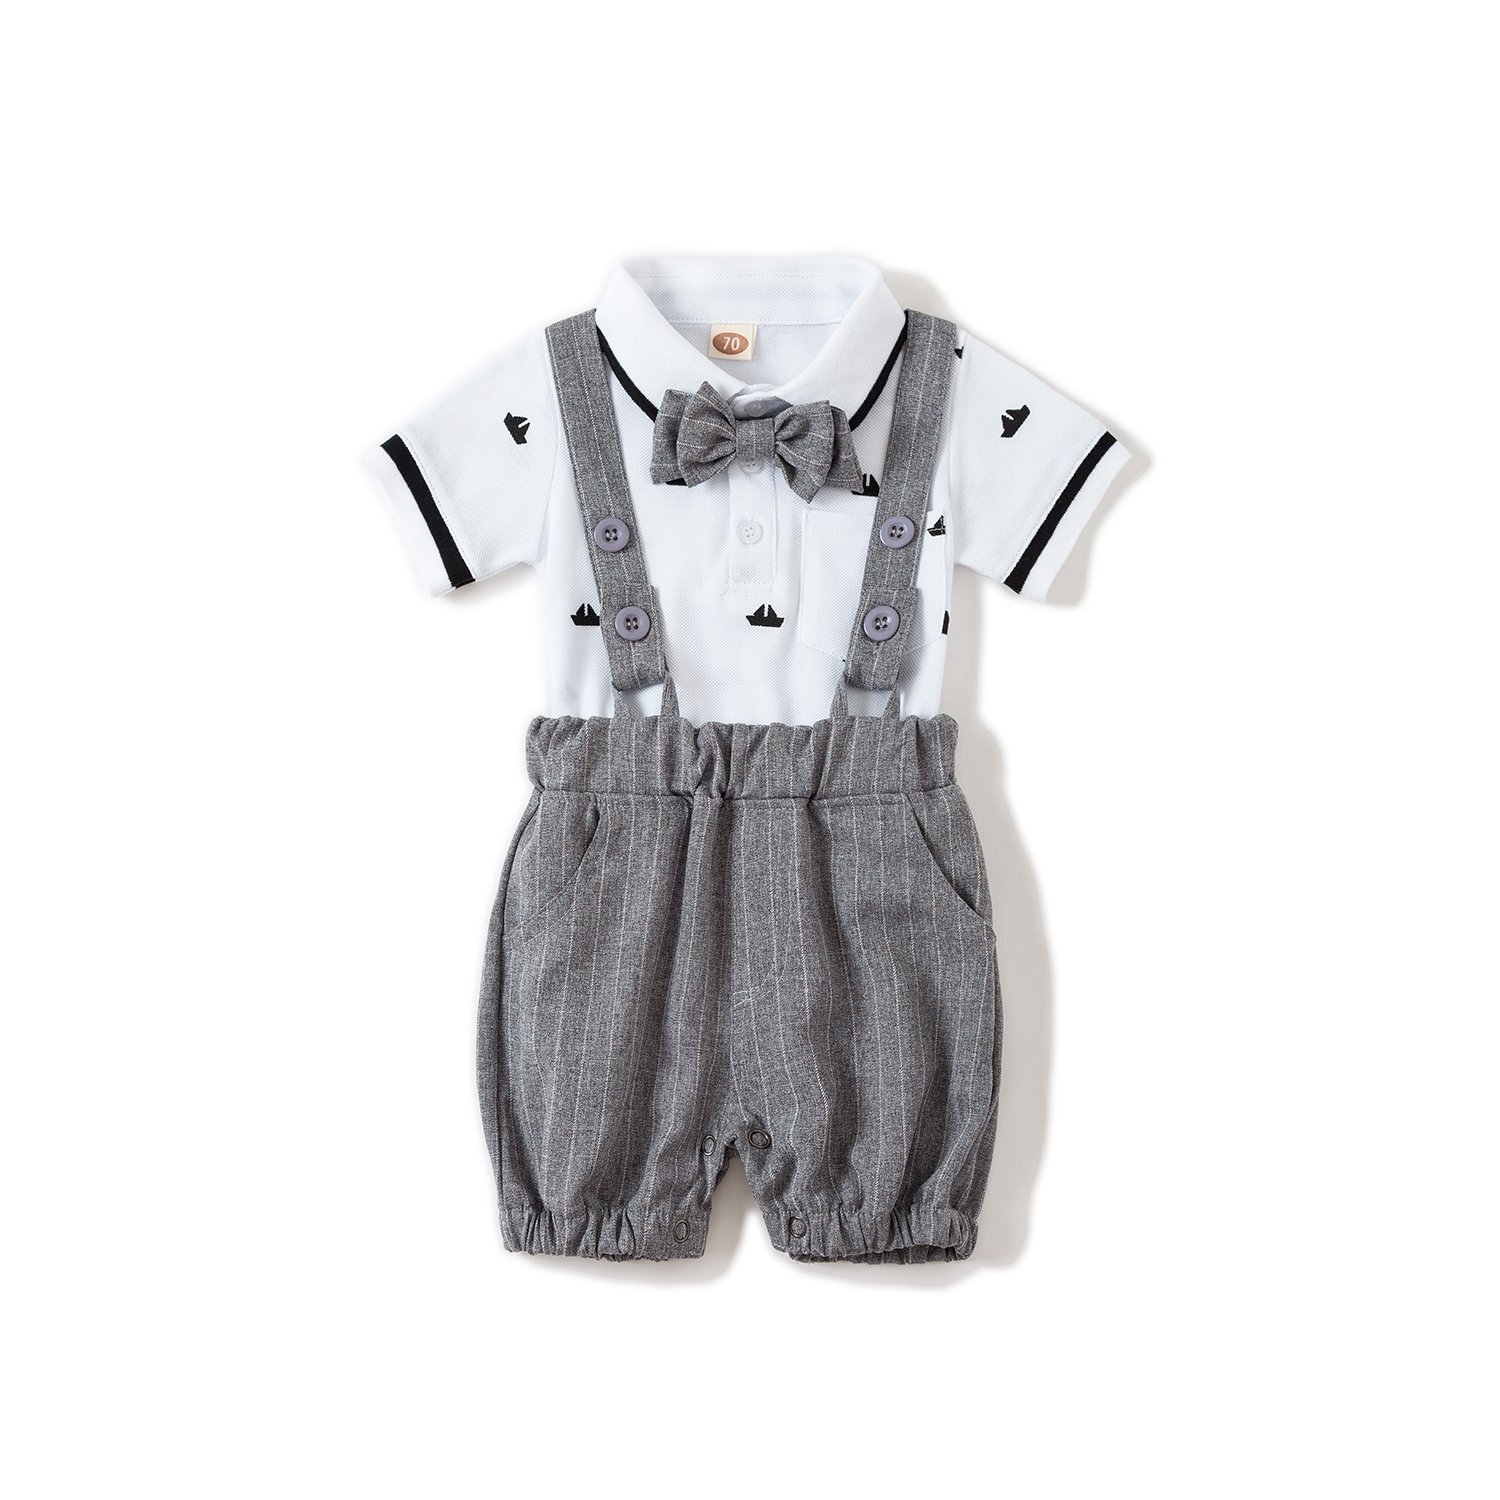 US Baby Boys Gentleman Jumpsuit Outfits Suits Bow Tie Overalls Clothes Set(0-6Months)